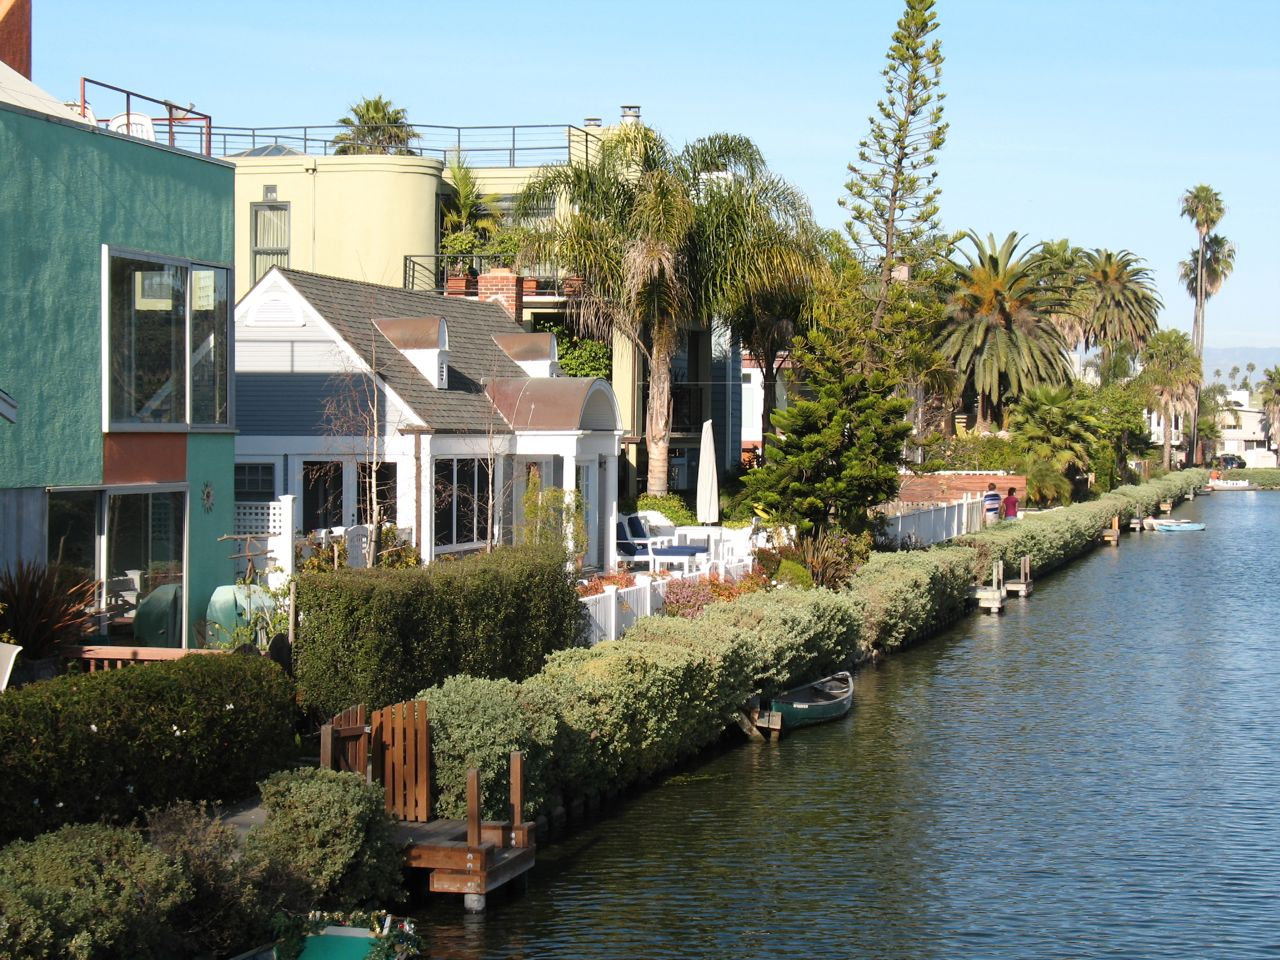 https://i1.wp.com/www.alicesgardentravelbuzz.com/wp-content/uploads/2011/03/Venice-California-Canal-Photo-Alice-Joyce1.jpg